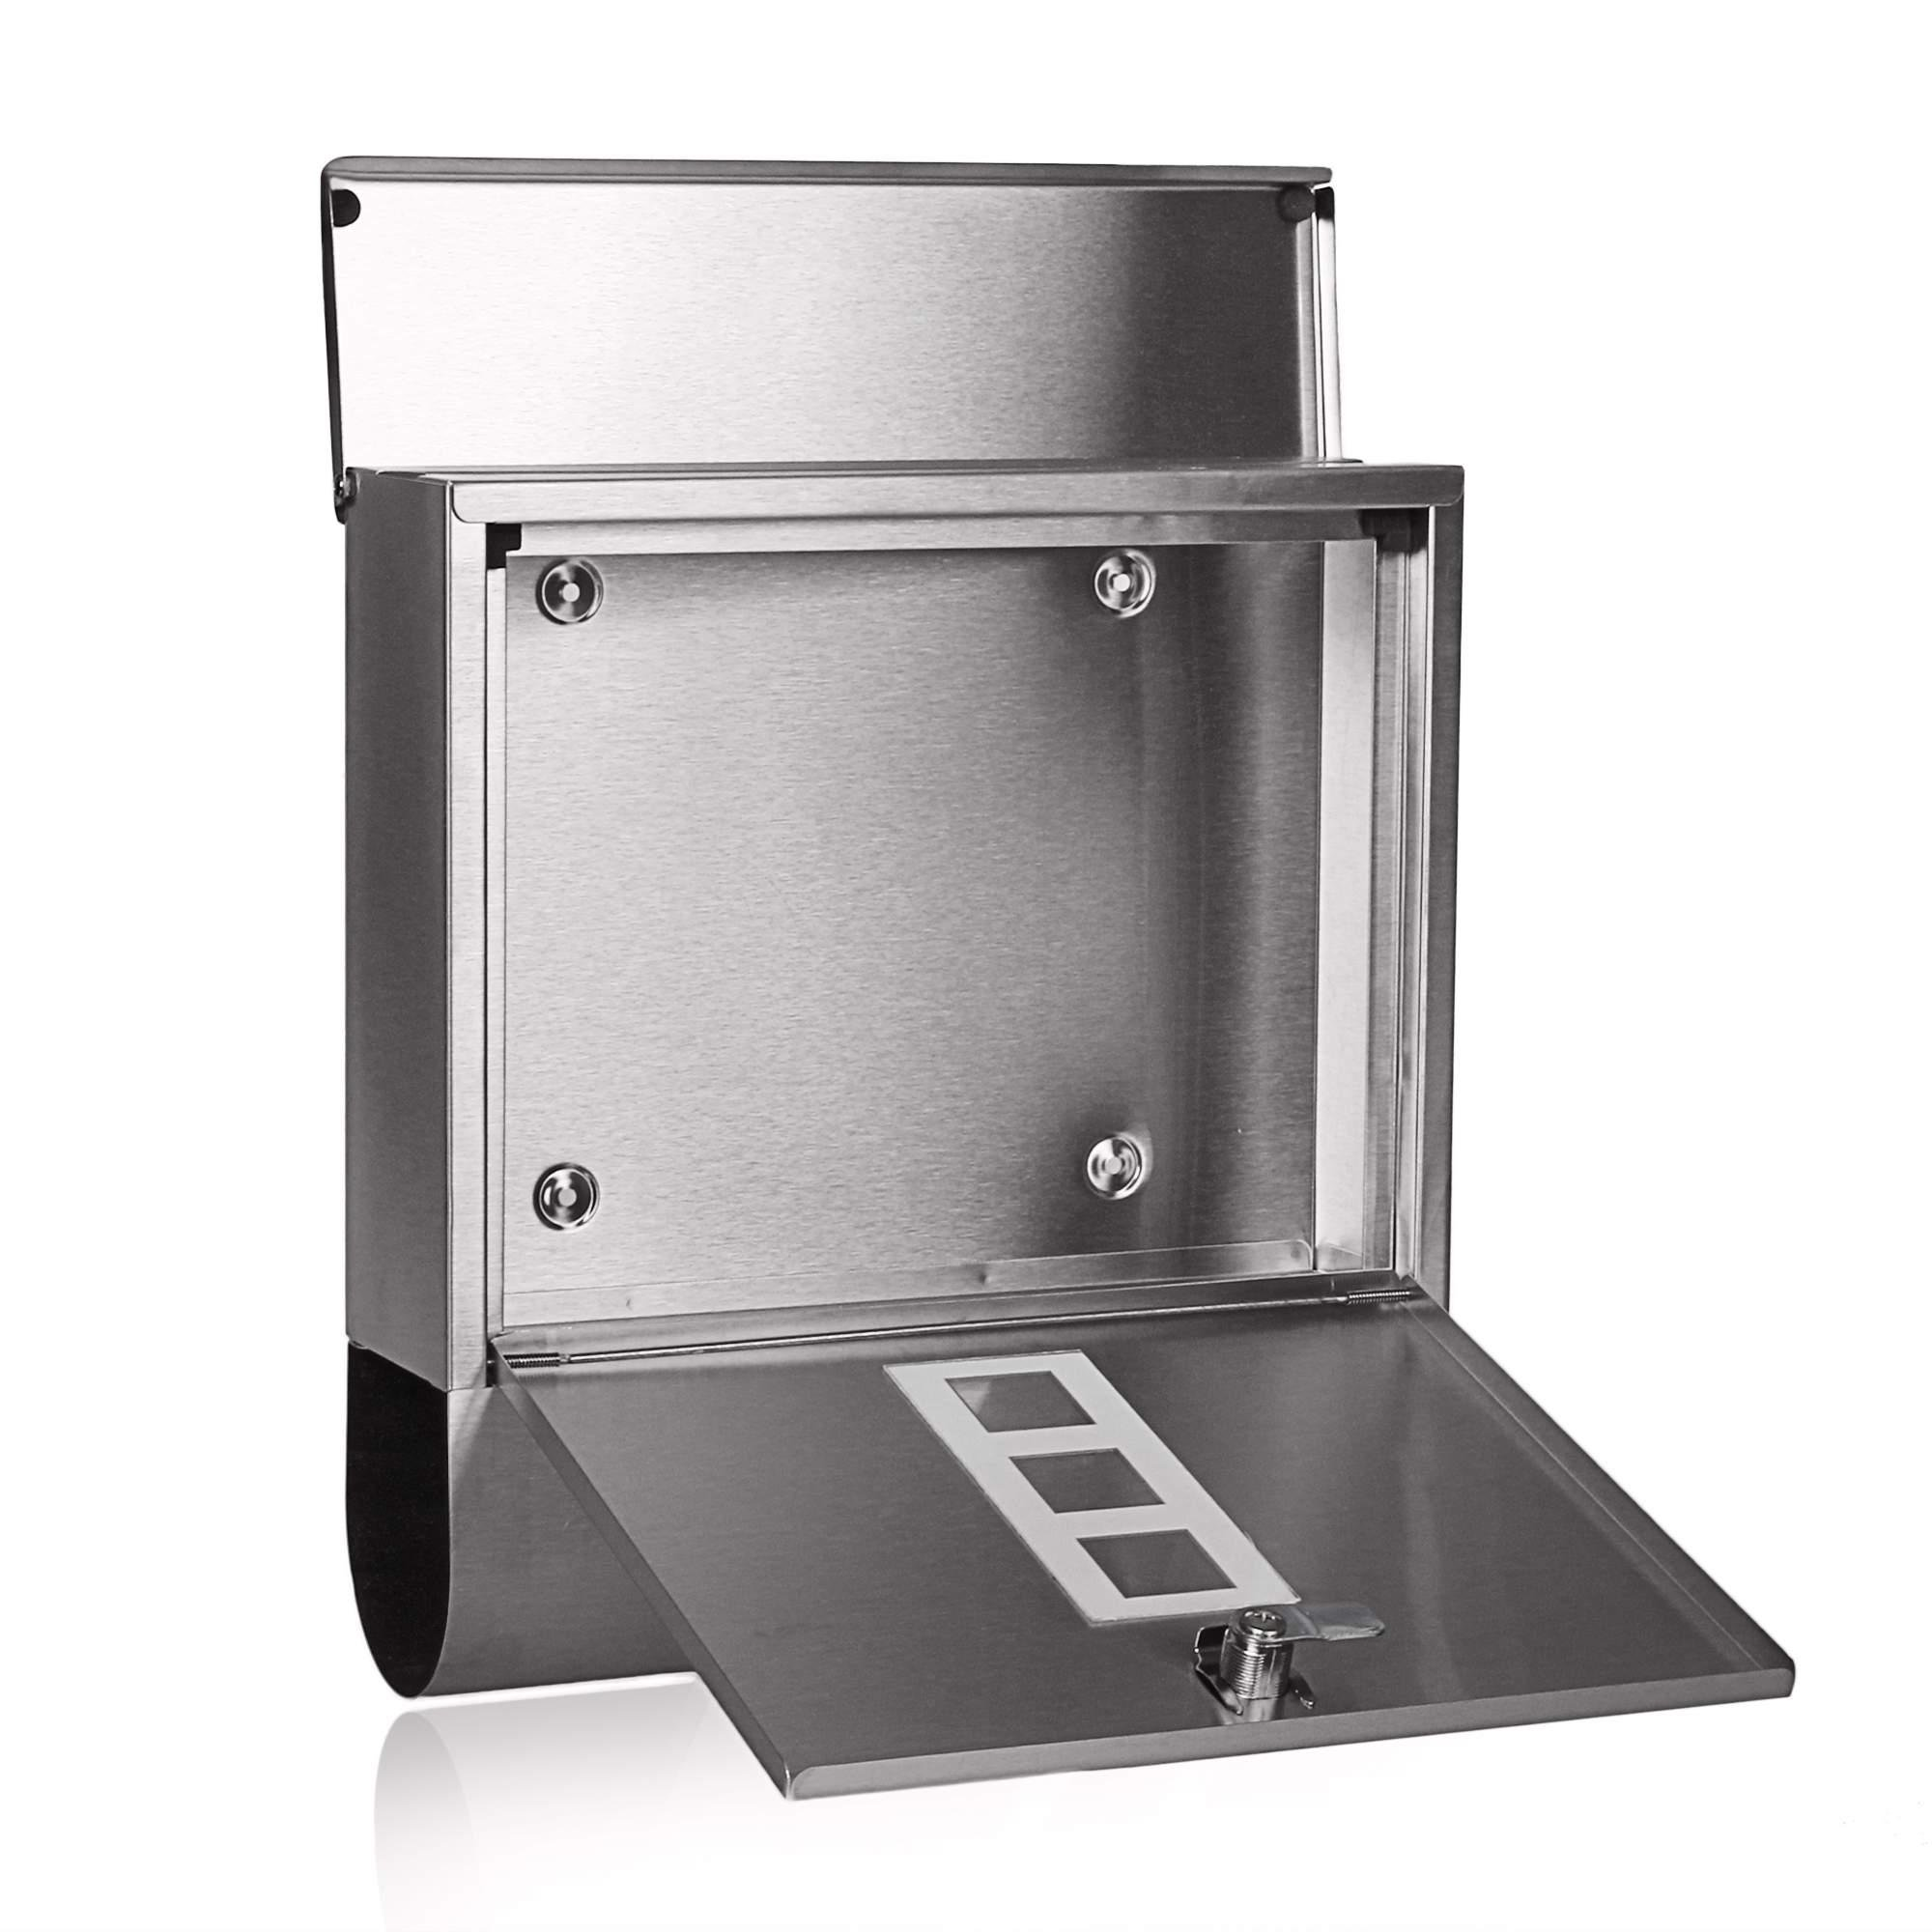 Stainless Steel Locking Mailbox Wall Mounted Letterbox [US Stock] by Rateim (Image #4)